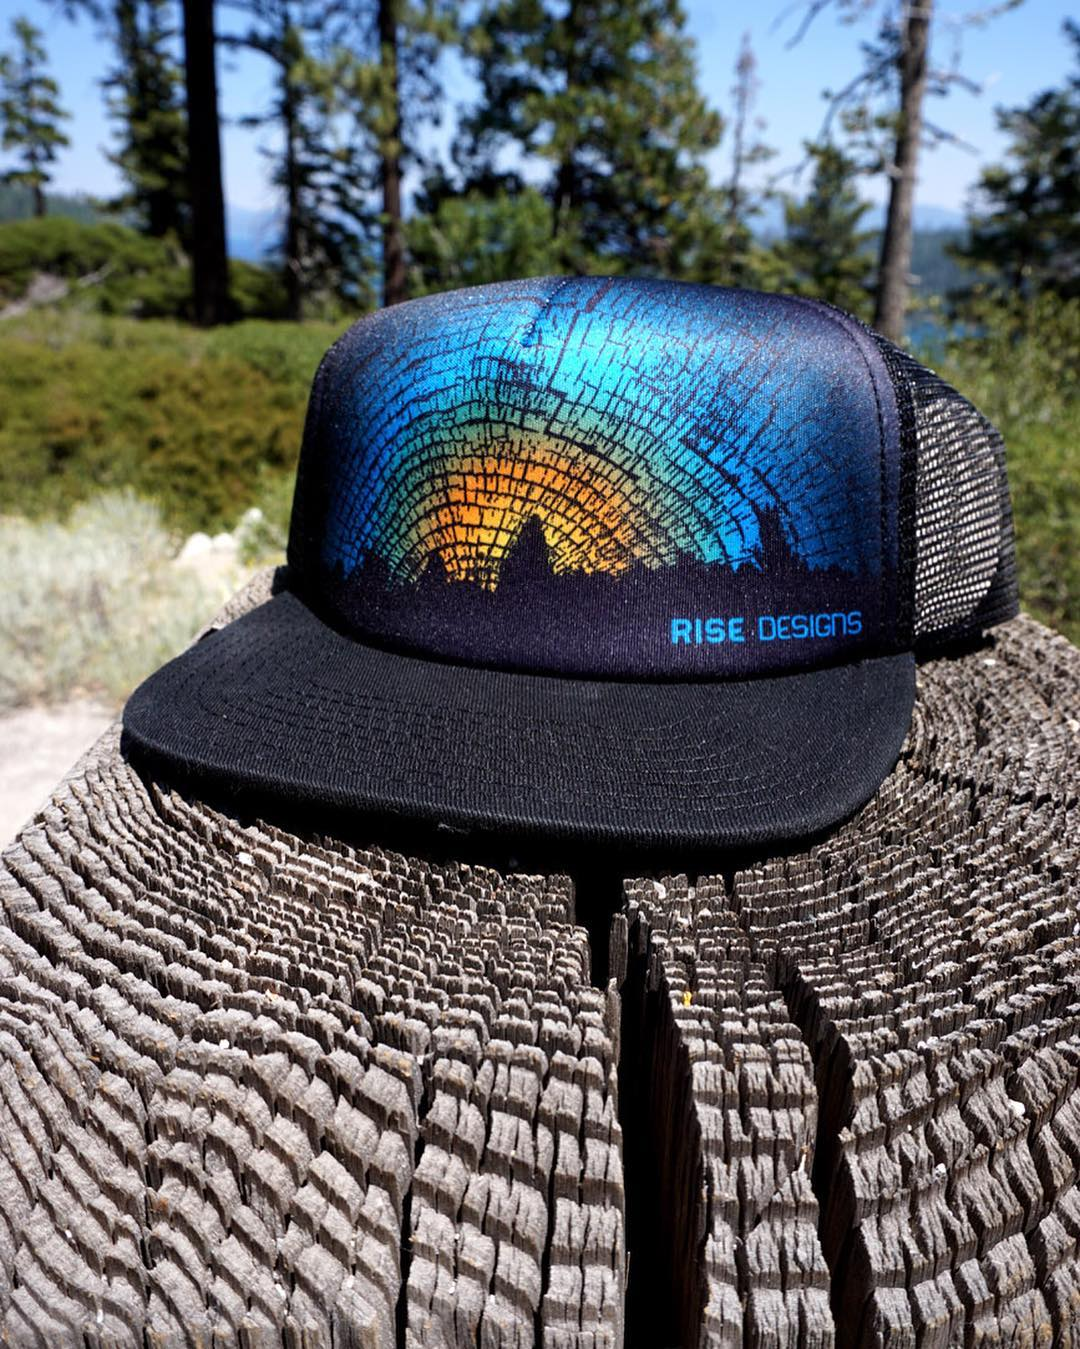 The Daybreak Trucker - inspired by nature, driven by design. Grab one today!